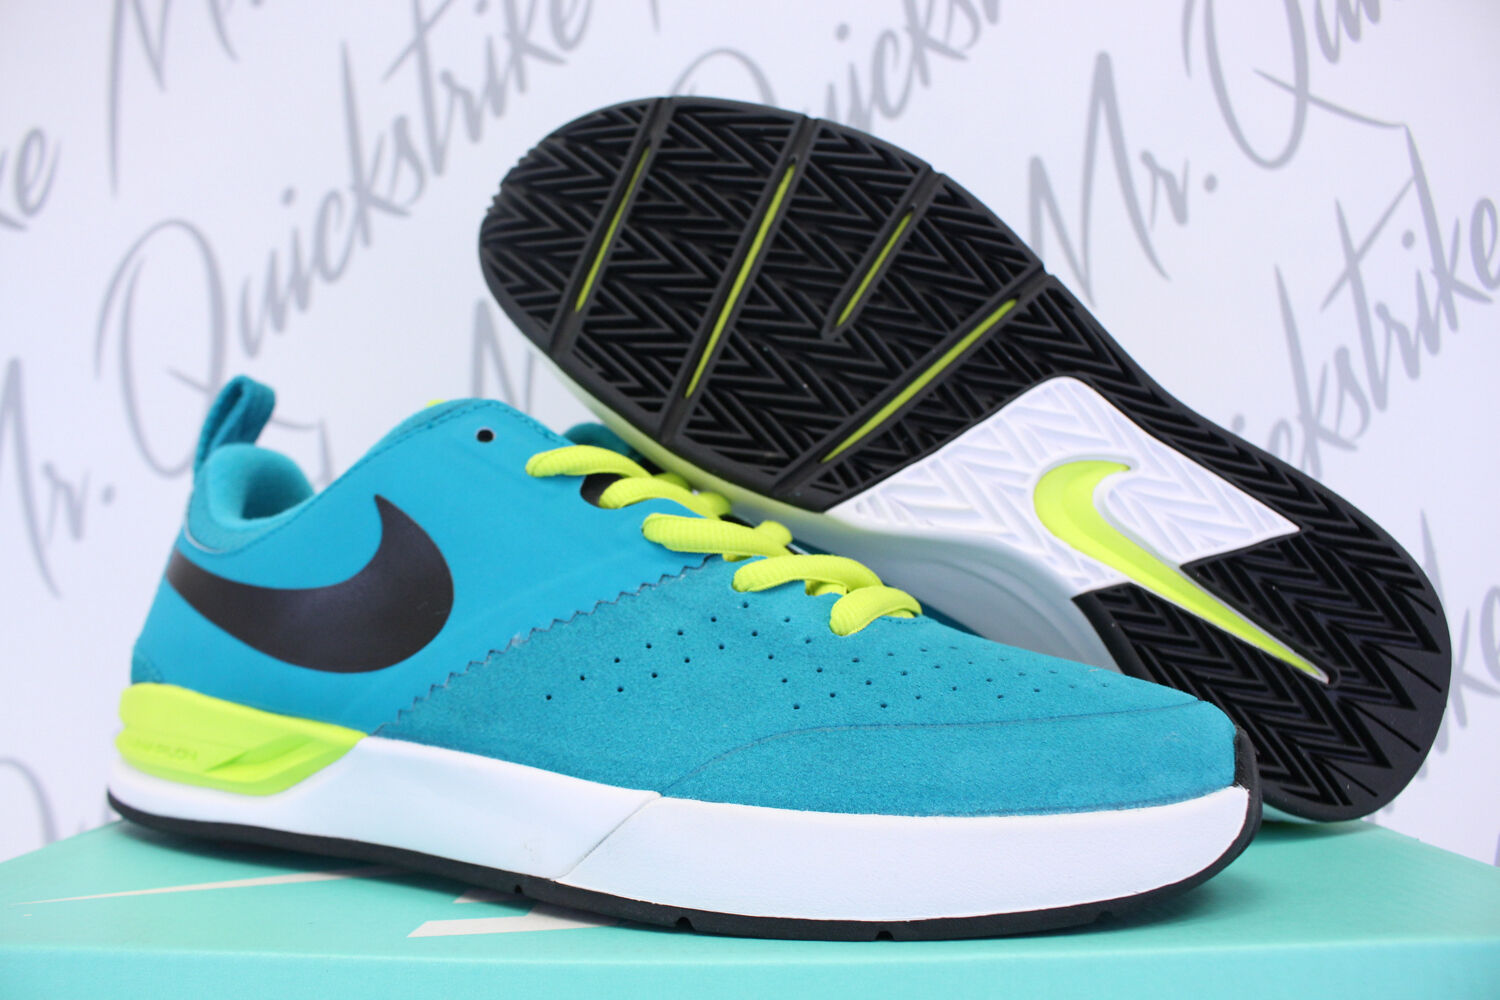 NIKE PROJECT BA SB Price reduction Cheap women's shoes women's shoes